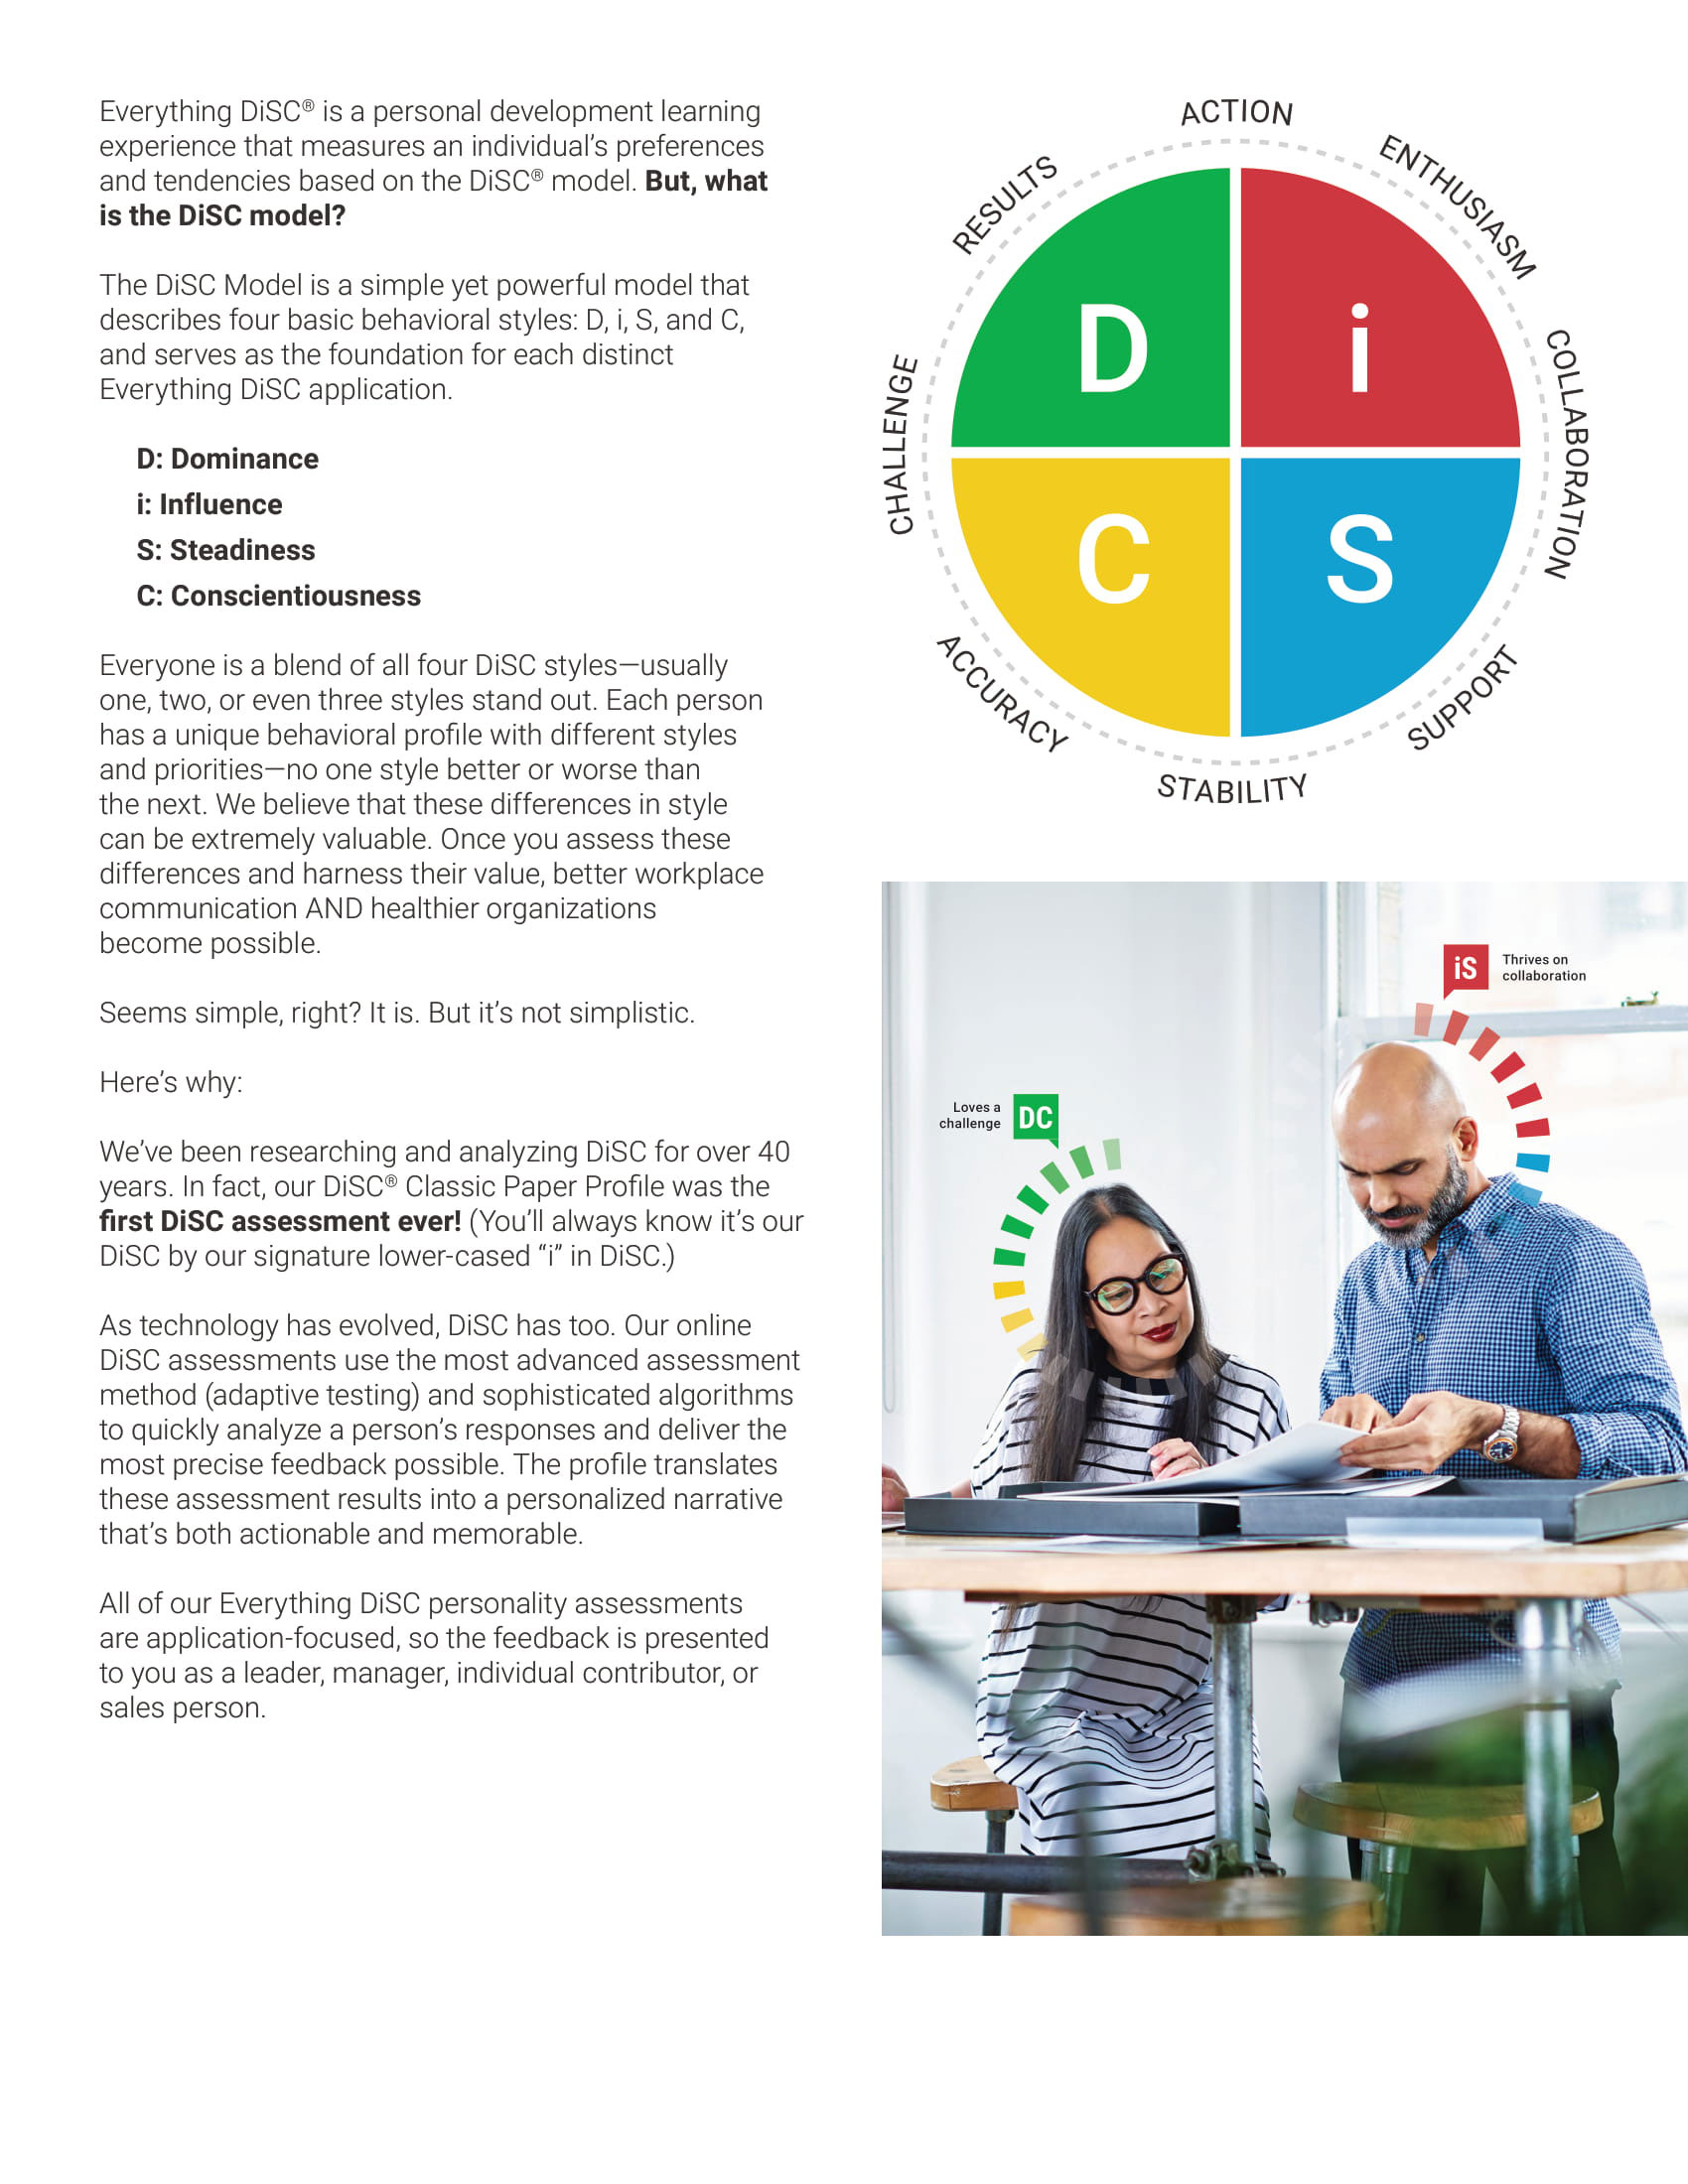 DISC assessment tools